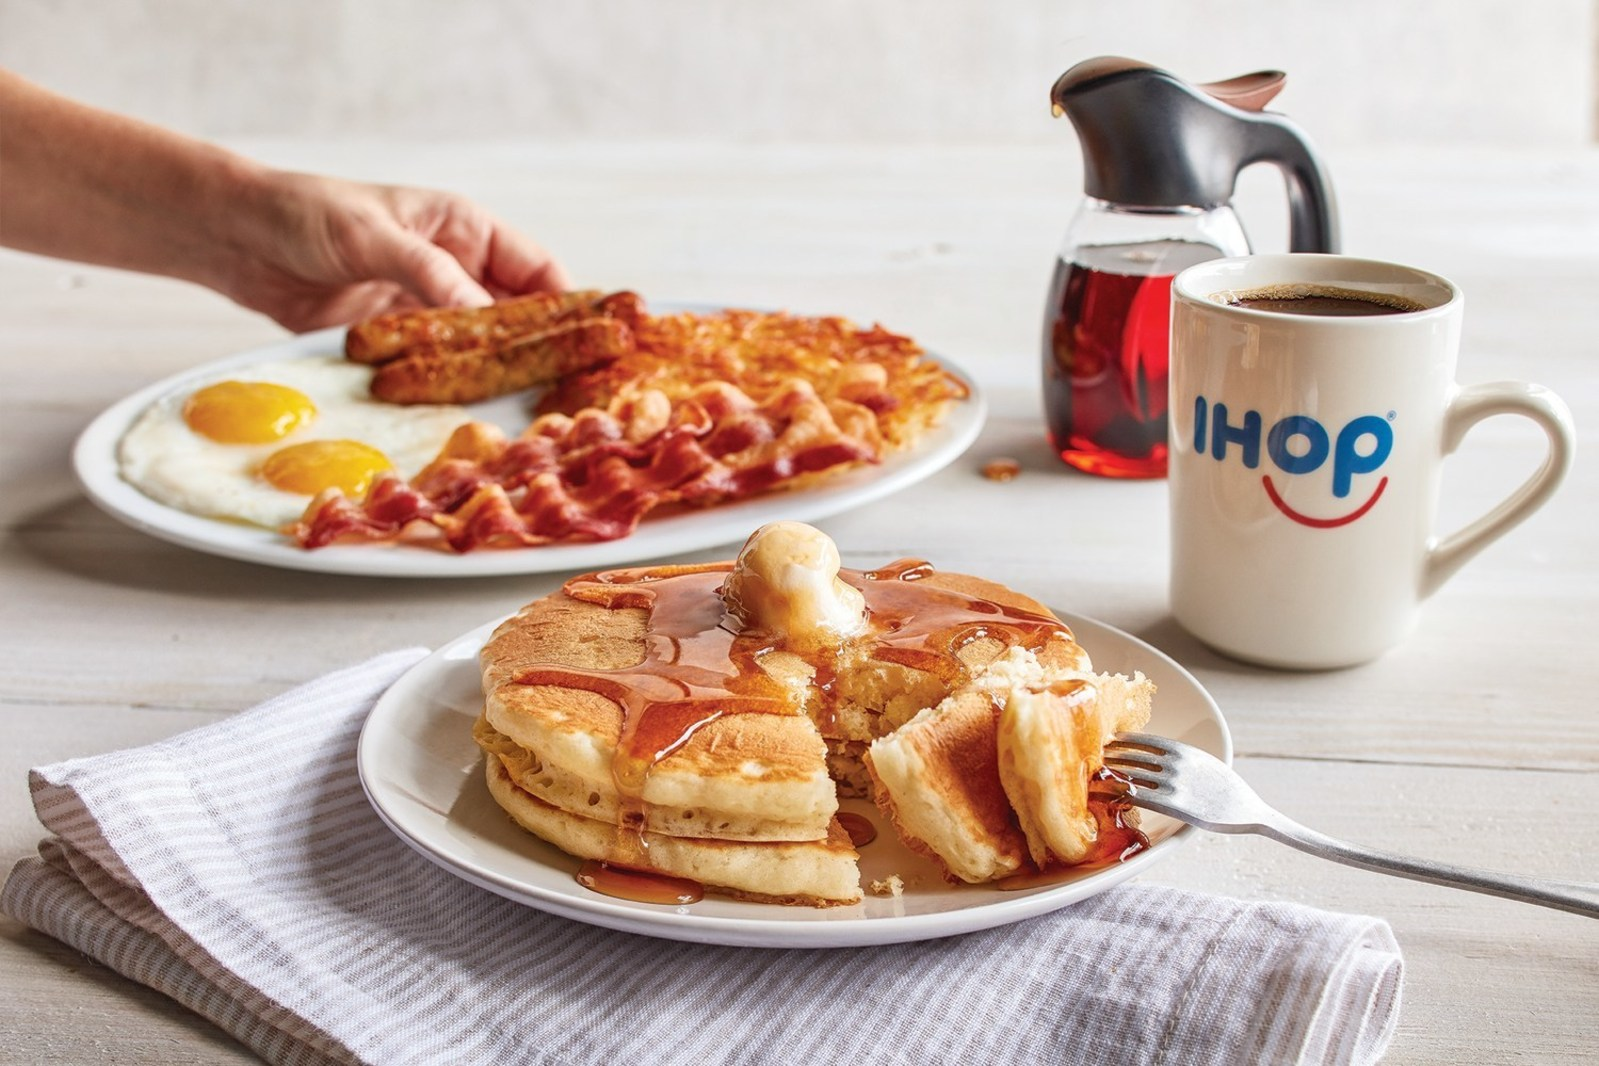 IHOP Just Launched a $3.99 All-You-Can-Eat Pancakes Deal